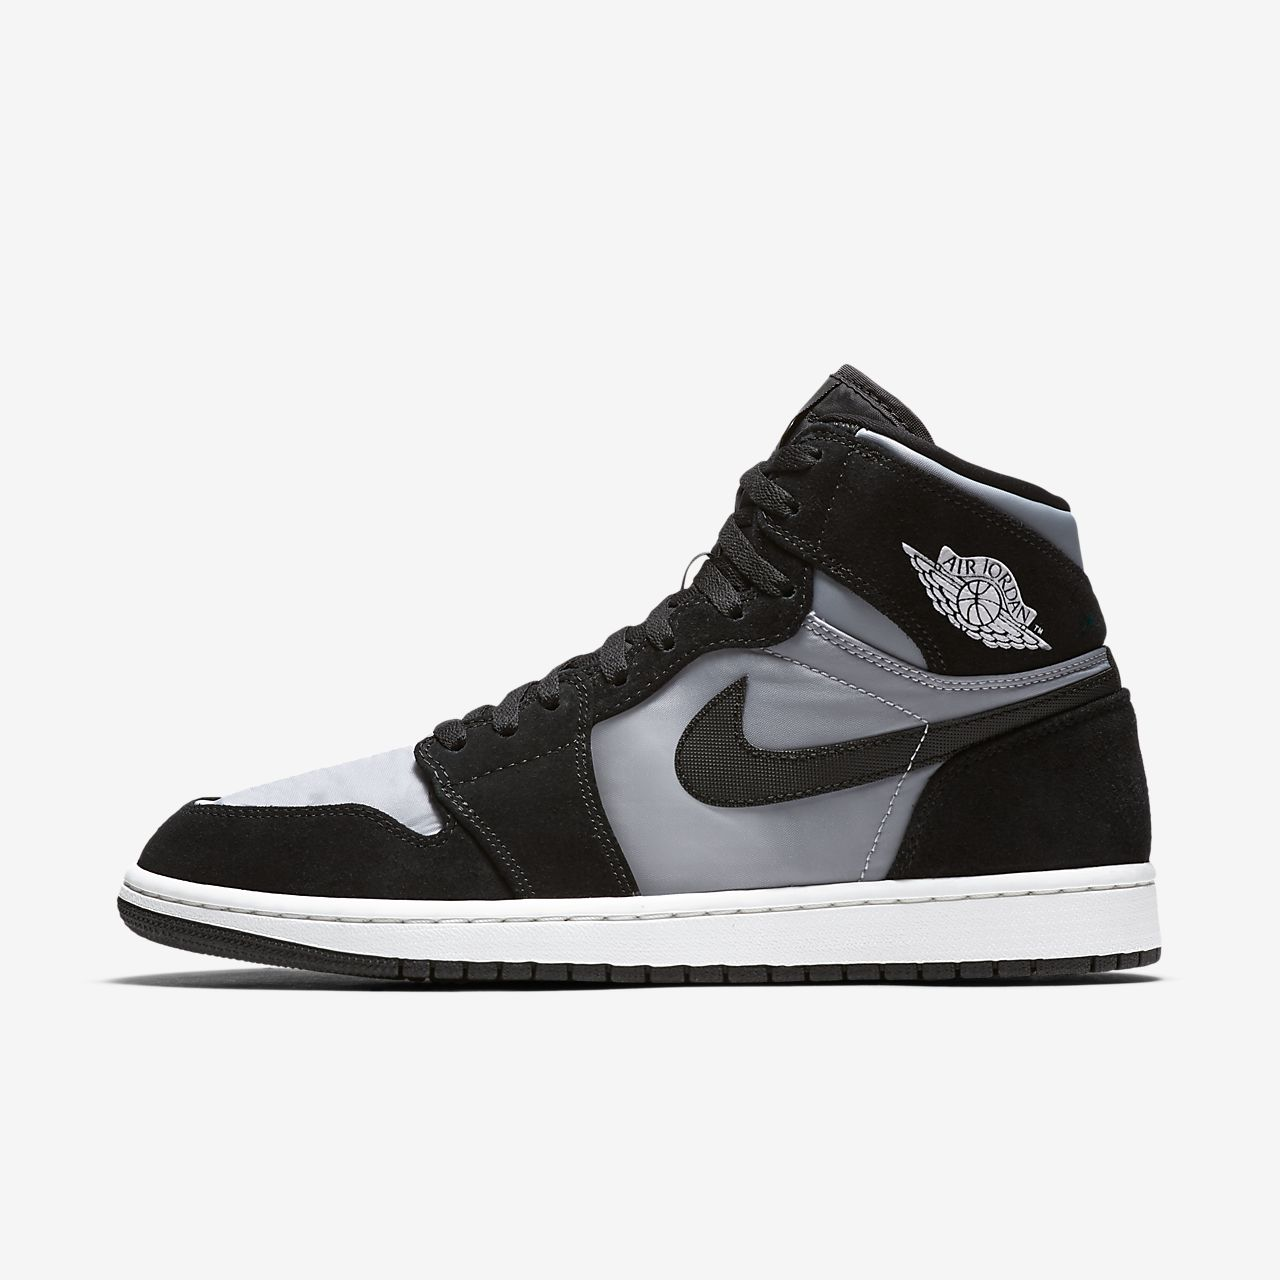 8d444b9a3d Air Jordan 1 Retro High Premium Men's Shoe